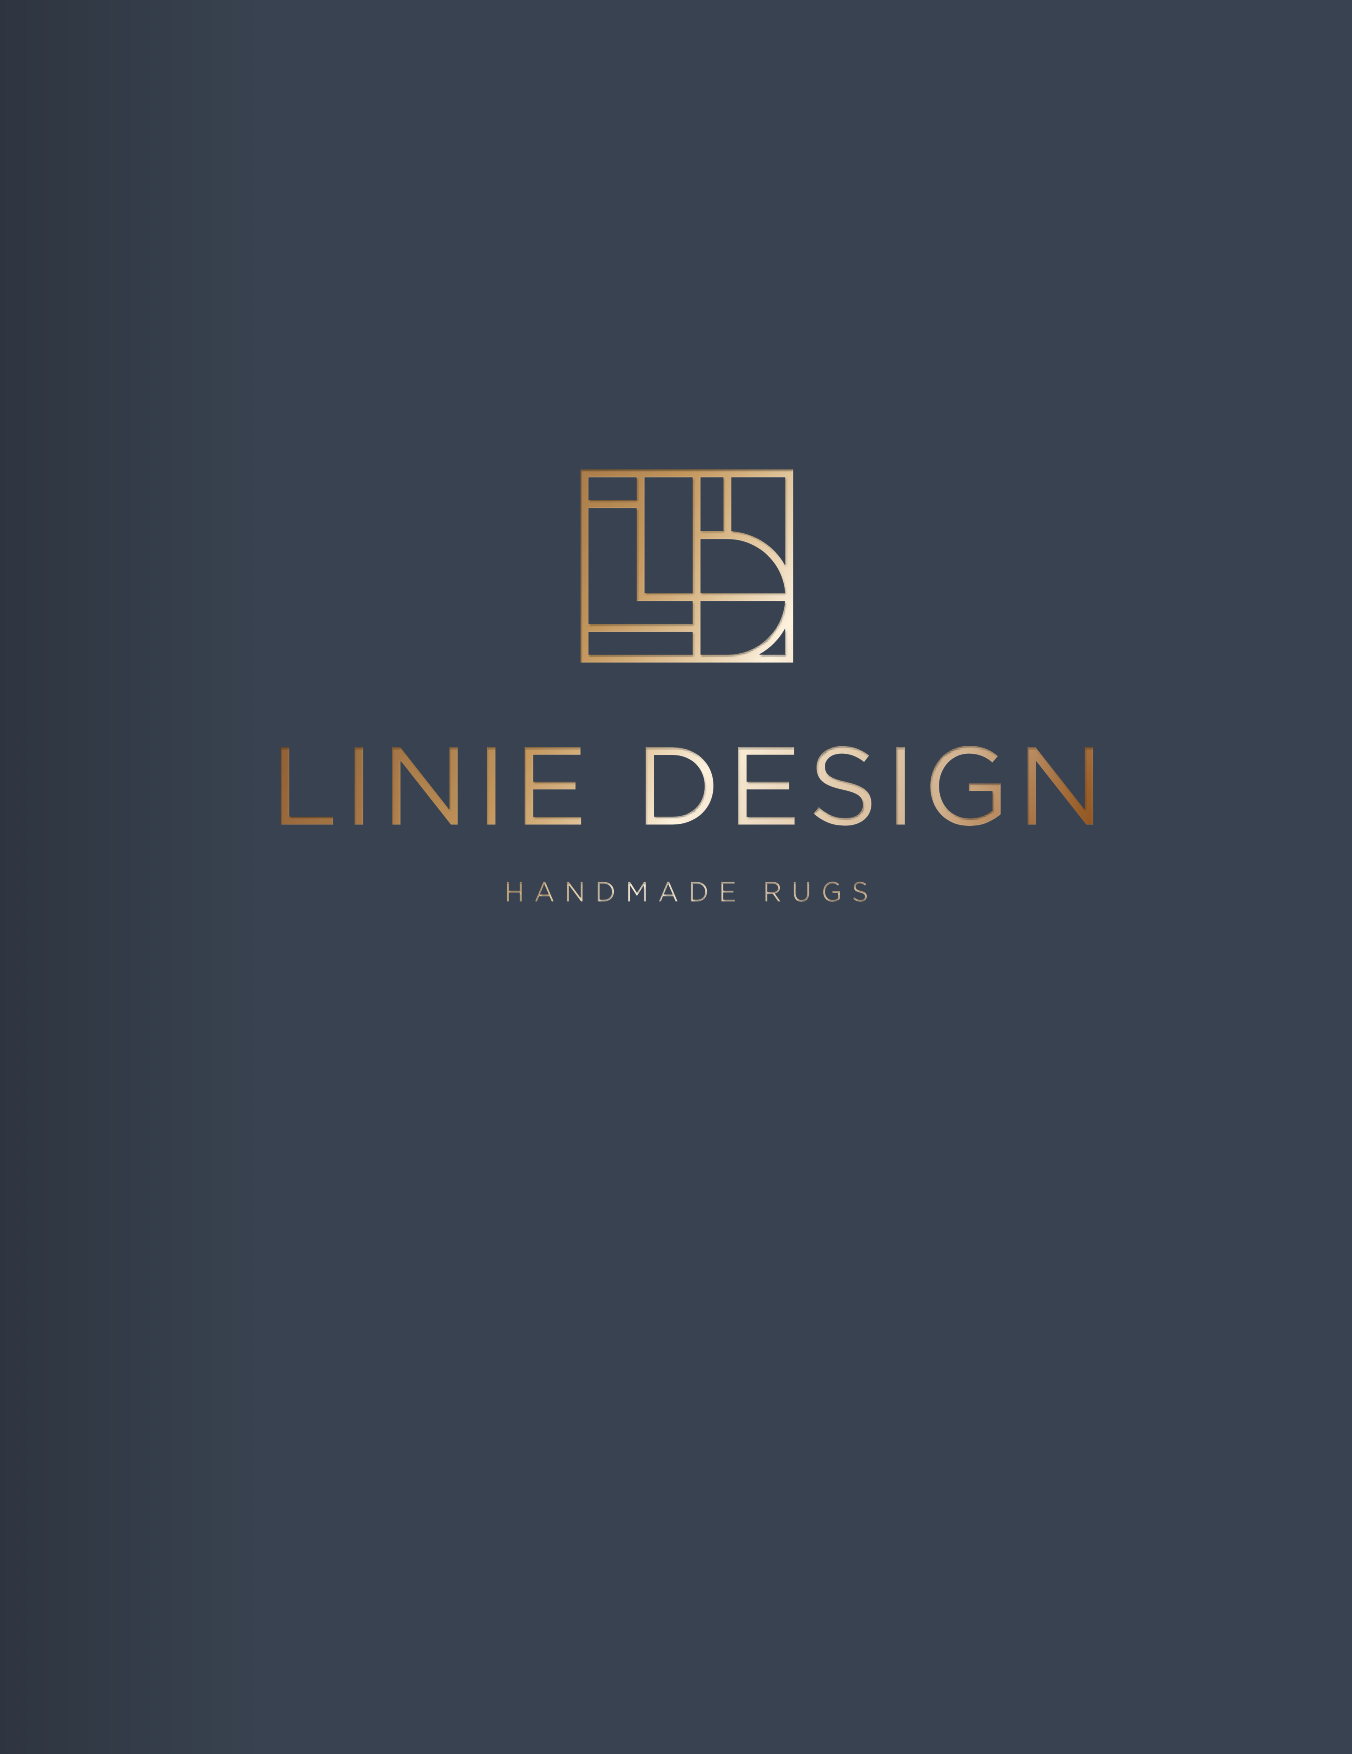 linie-design-artwork-cover.png